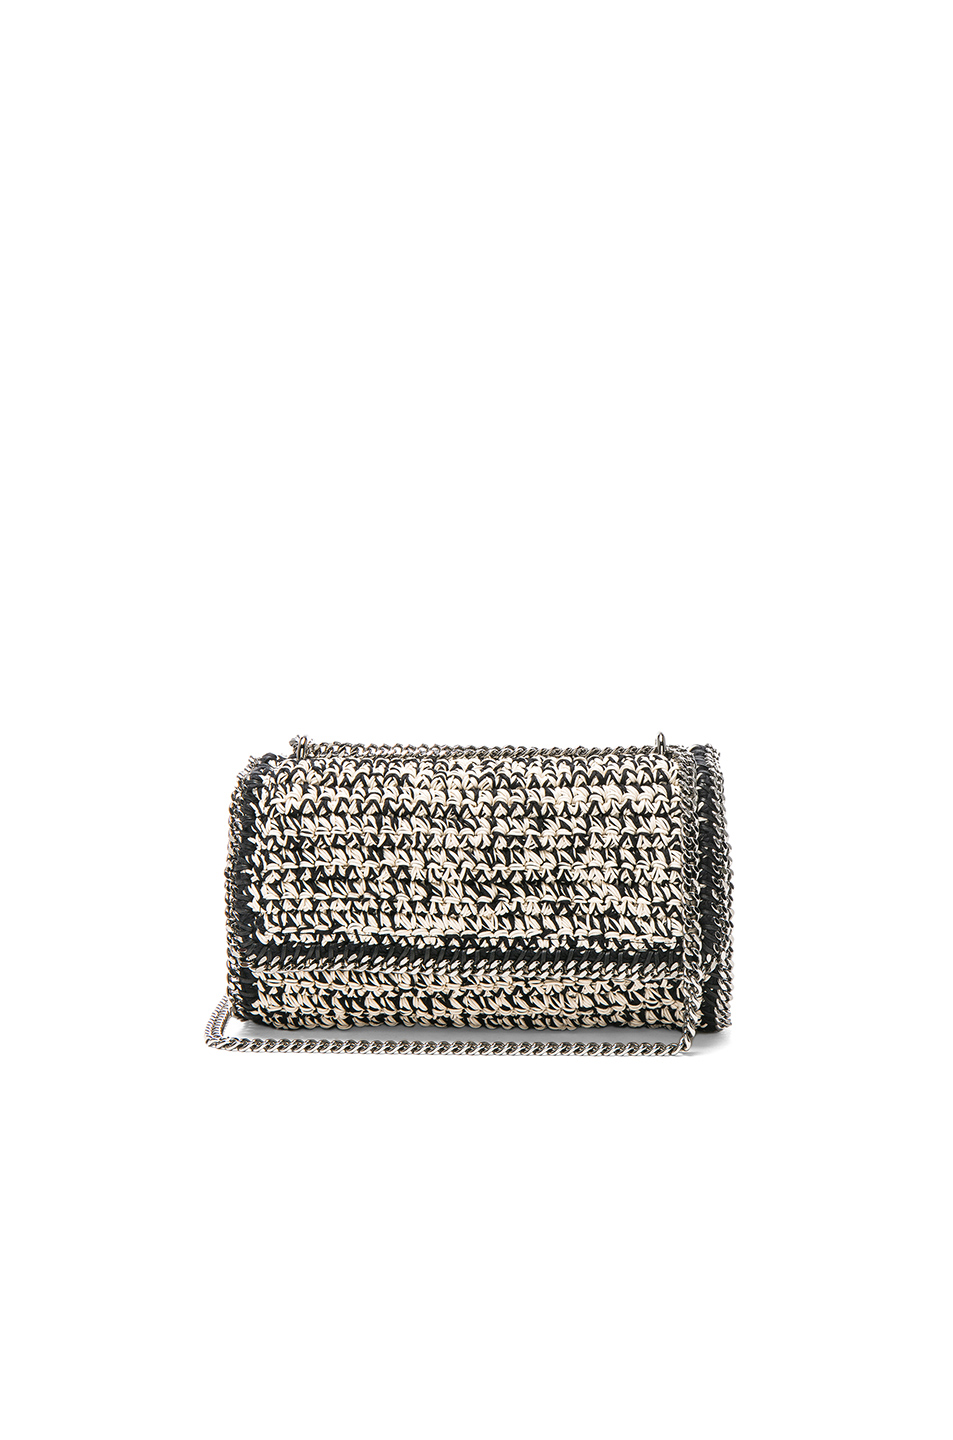 Stella McCartneyFalabella Crochet Shoulder Bag in Black,White